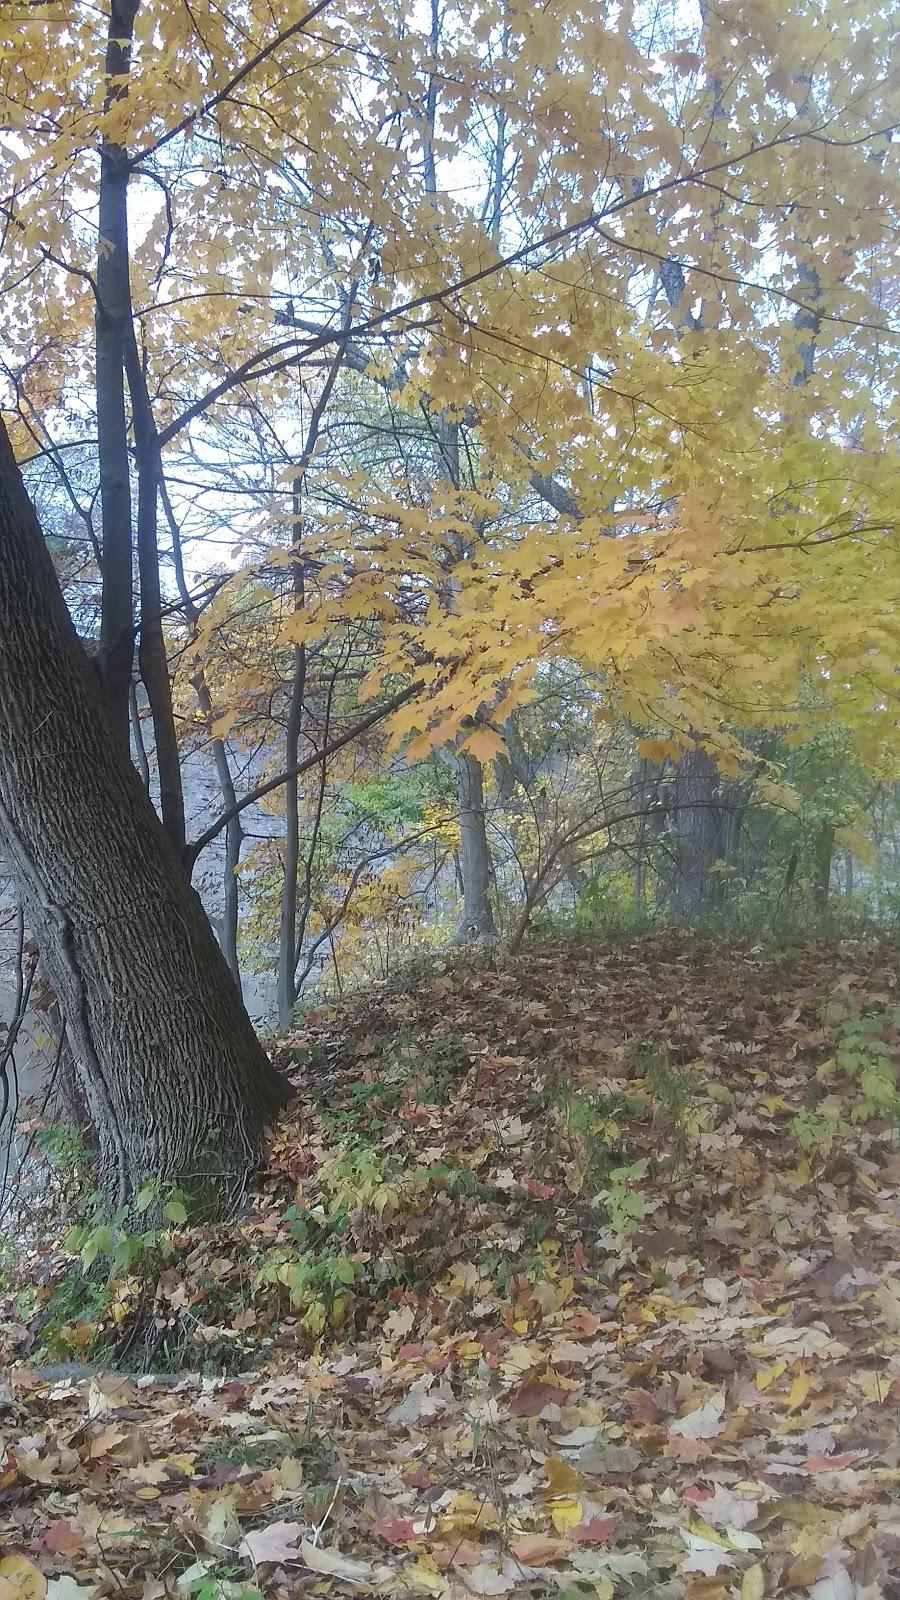 Metro Parks - park  | Photo 9 of 10 | Address: Scenic Park Loop Trail, Lakewood, OH 44107, USA | Phone: (216) 635-3200